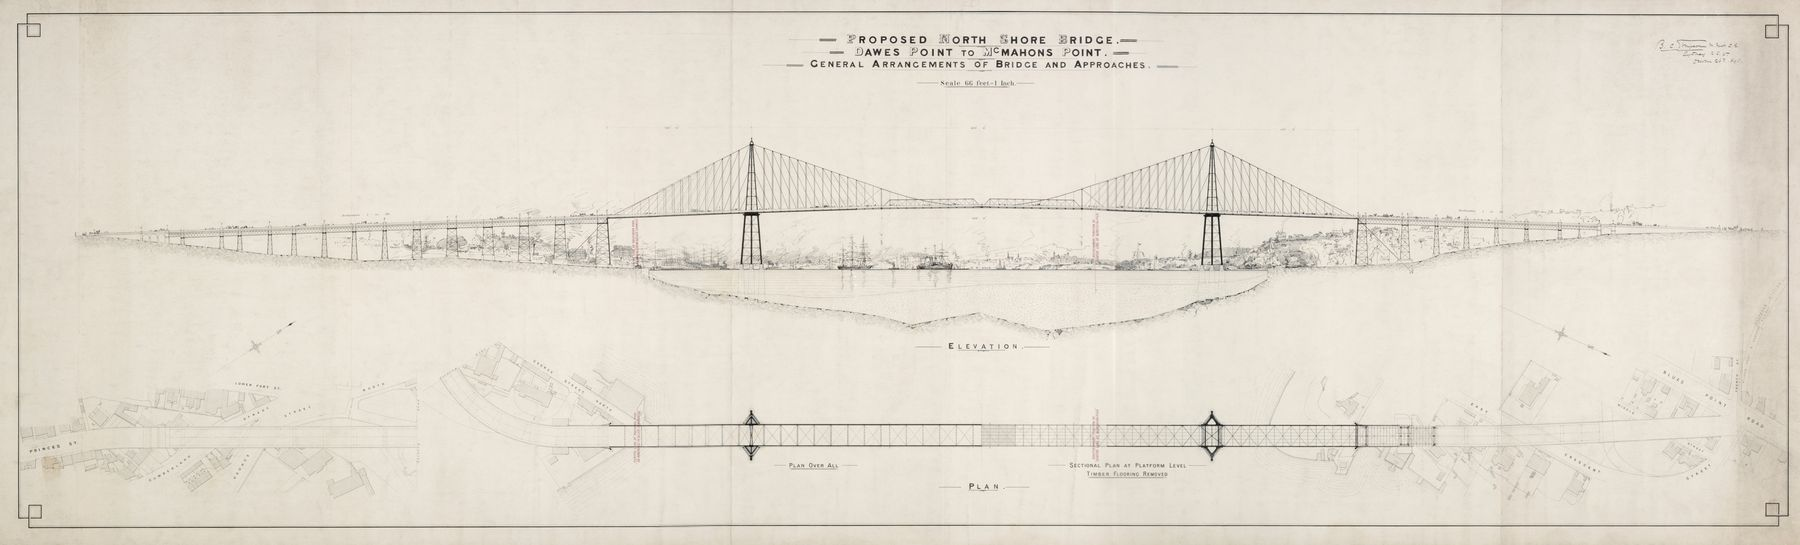 Proposed North Shore bridge & other plans, 1894-1899 / drawing by Benjamin Crispin Simpson, PXD 318